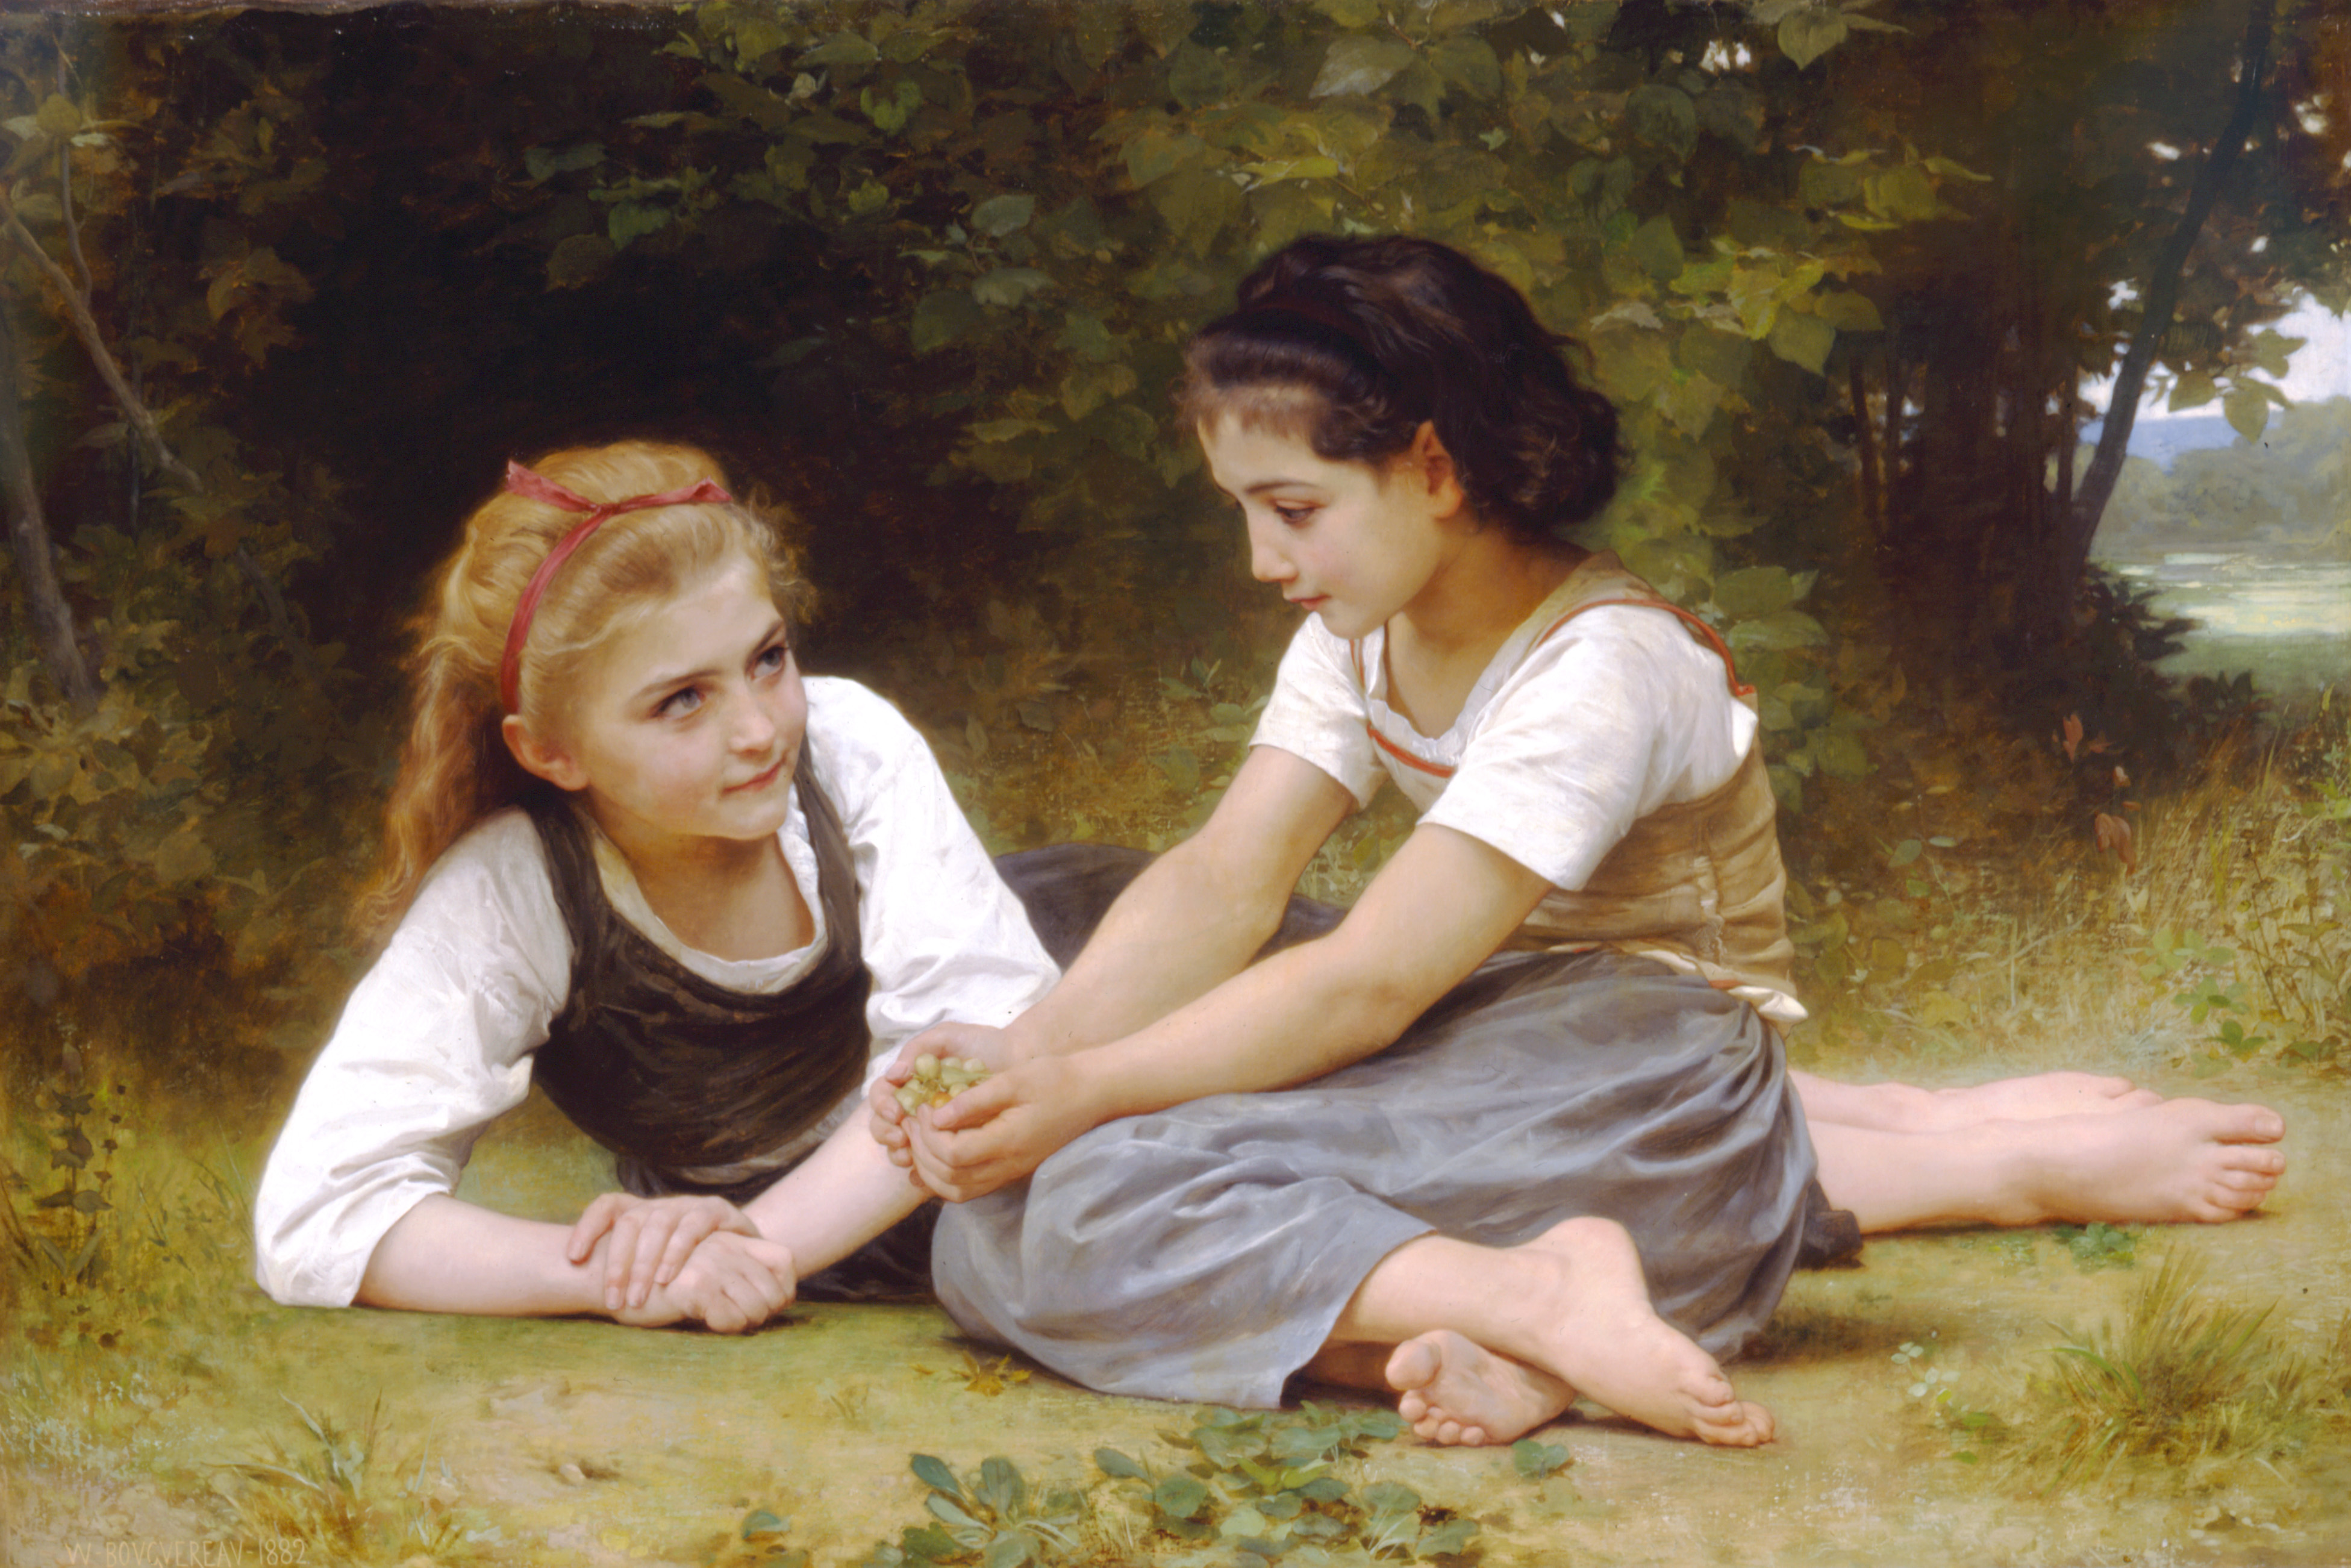 William-Adolphe_Bouguereau_(1825-1905)_-_The_Nut_Gatherers_(1882)